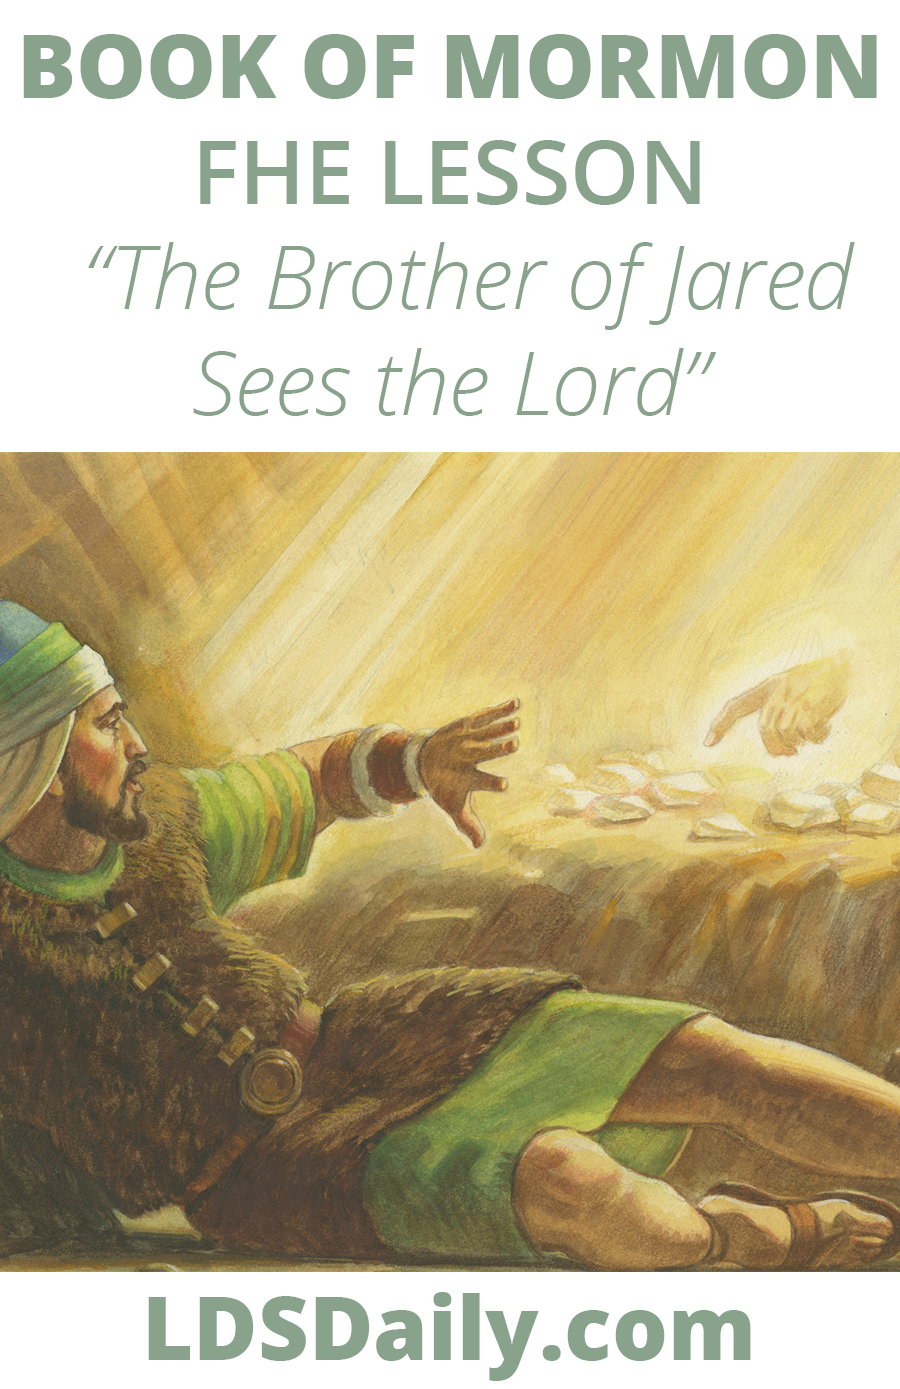 Book of Mormon FHE Lesson - The Brother of Jared Sees the Lord PIN